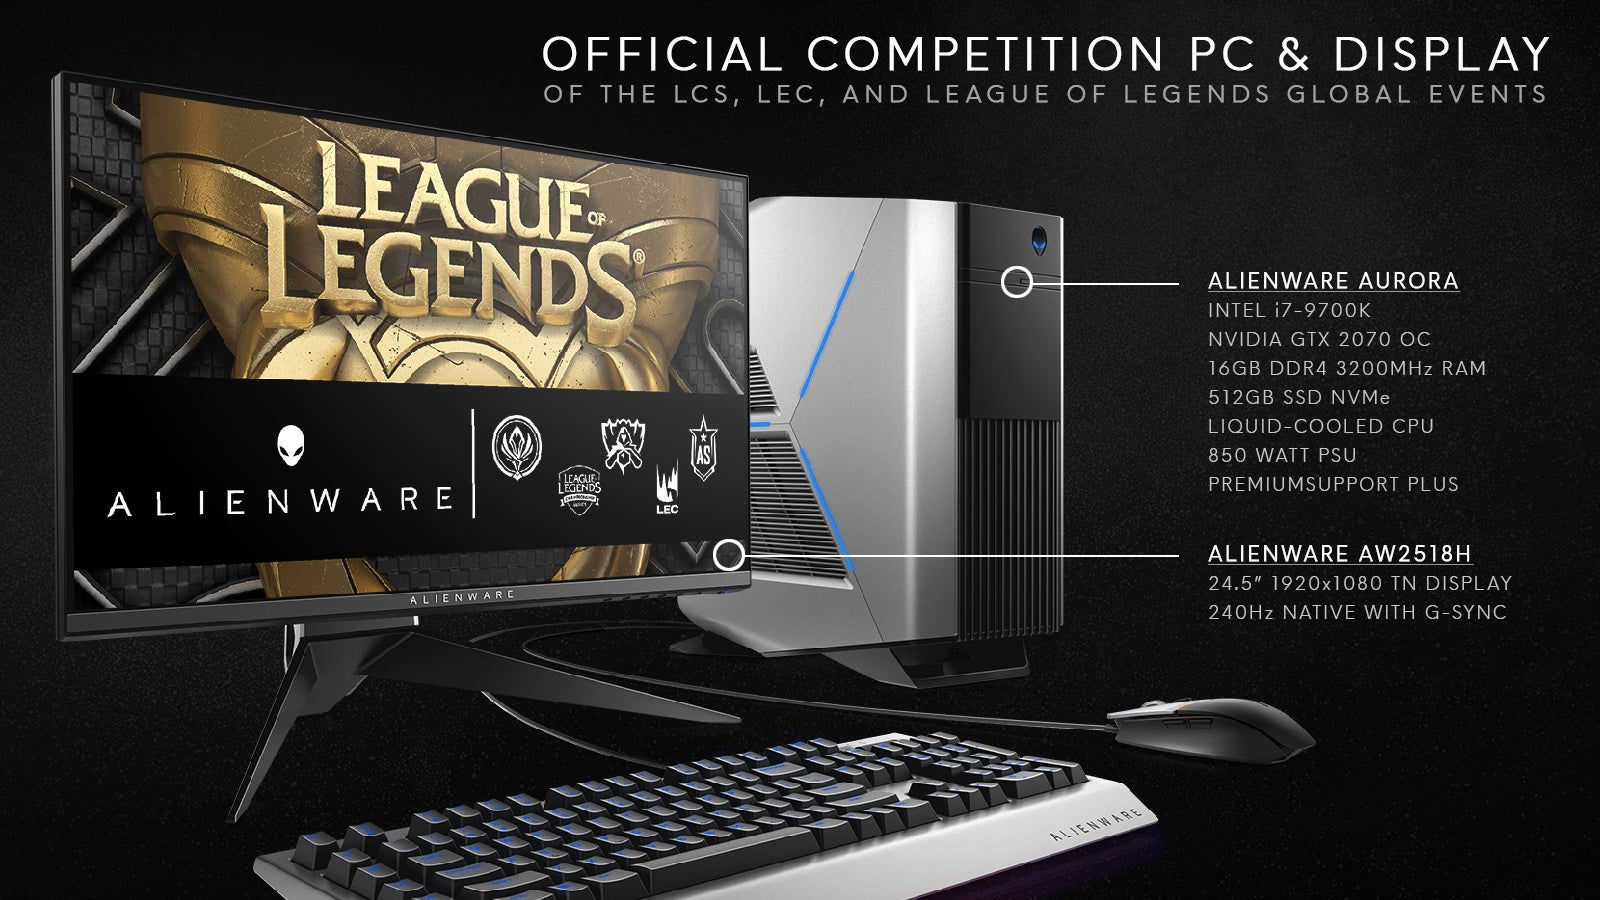 Alienware Aurora & AW2518H, Official PC & Display of League of Legends Esports